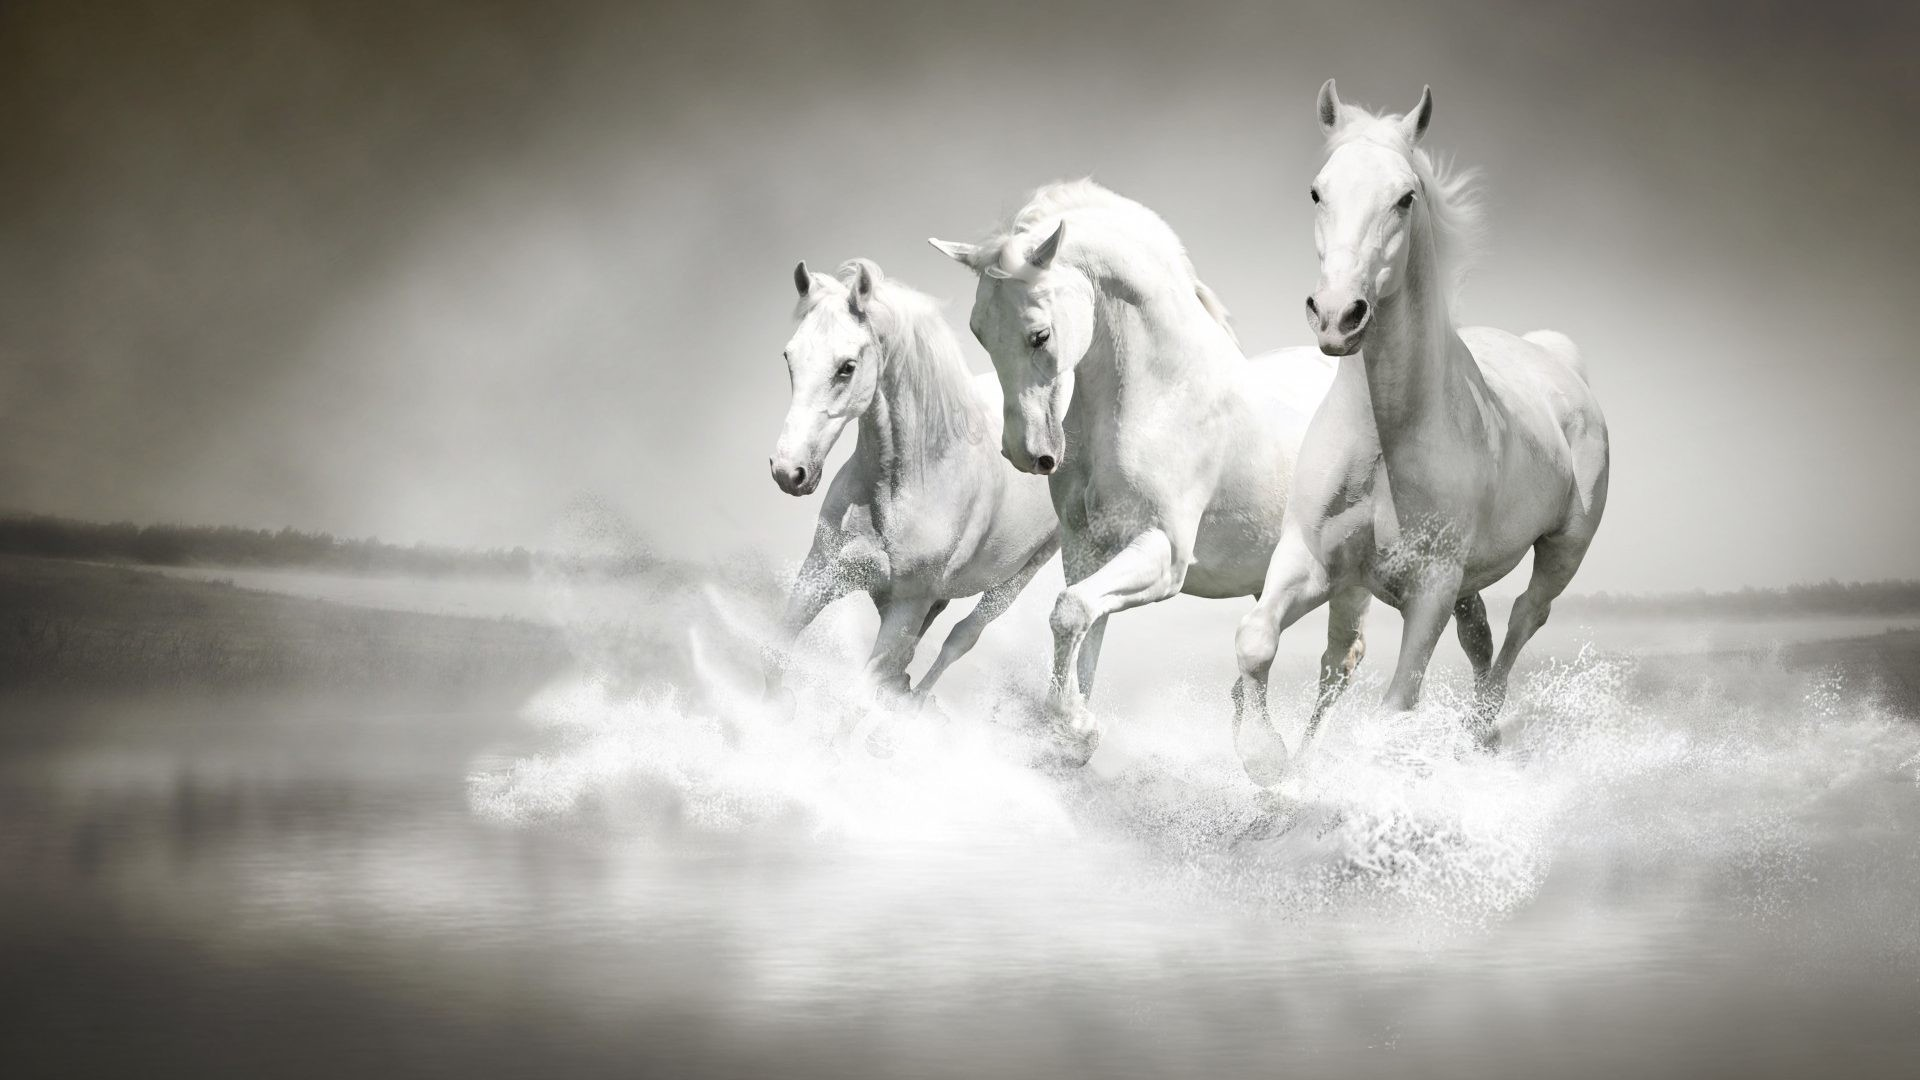 Res: 1920x1080, Waves Tag - Manipulation Ocean Sea Digital Art Waves Horses Beaches Animal  Love Wallpapers for HD